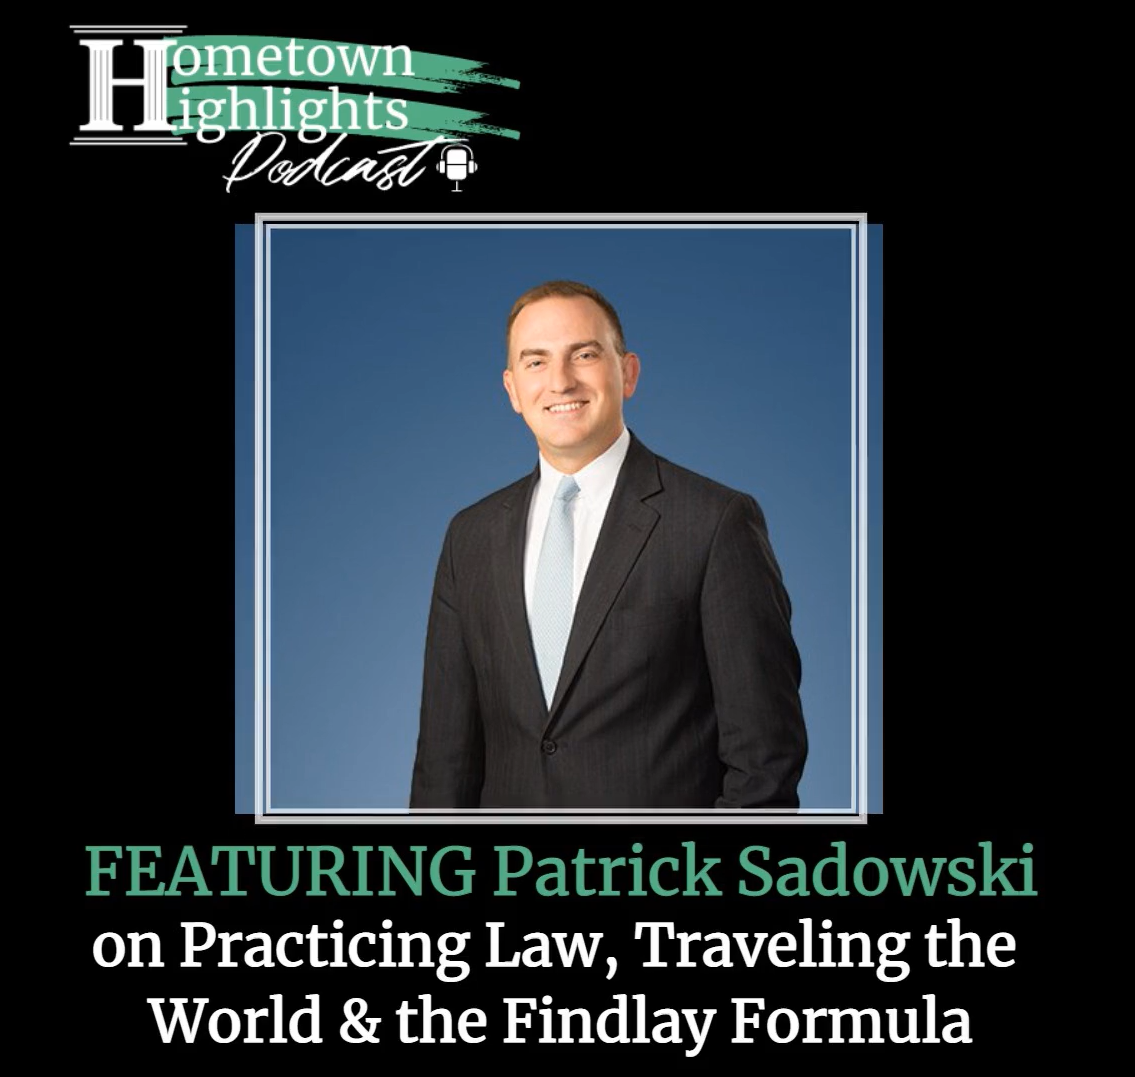 Episode 9: Practicing Law, Traveling the World & The Findlay Formula with Patrick Sadowski | Hometown Highlights Podcast